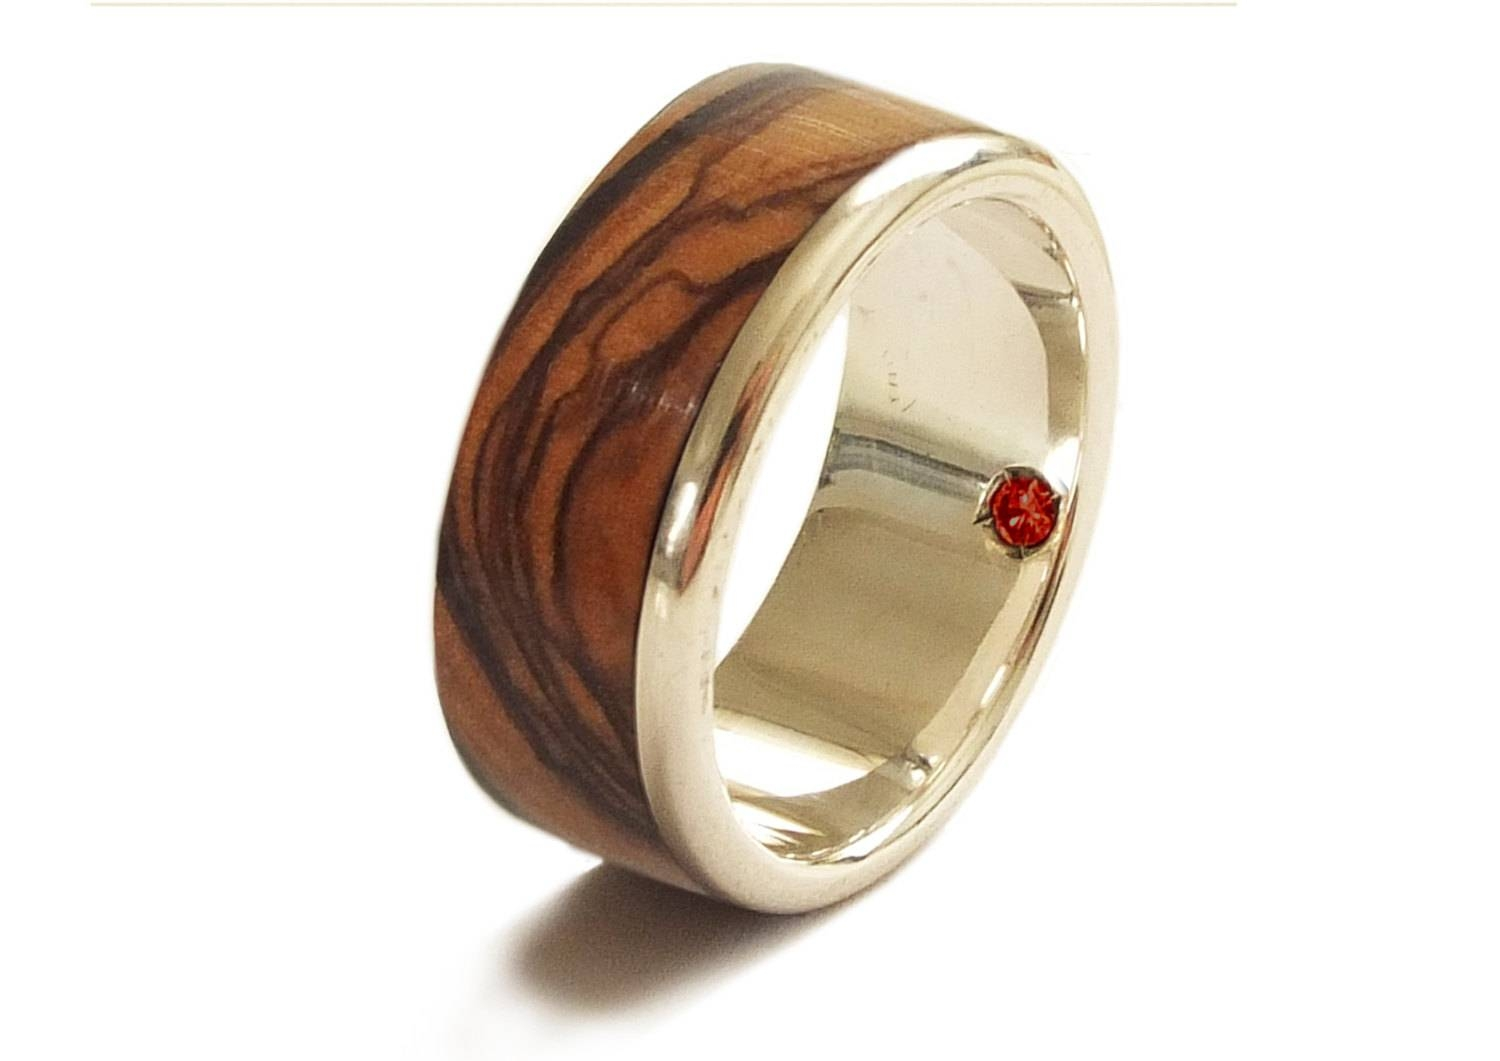 Olive Wood Ring In Sterling Silver And Garnet Wedding Band Throughout Men's Garnet Wedding Bands (Gallery 2 of 15)